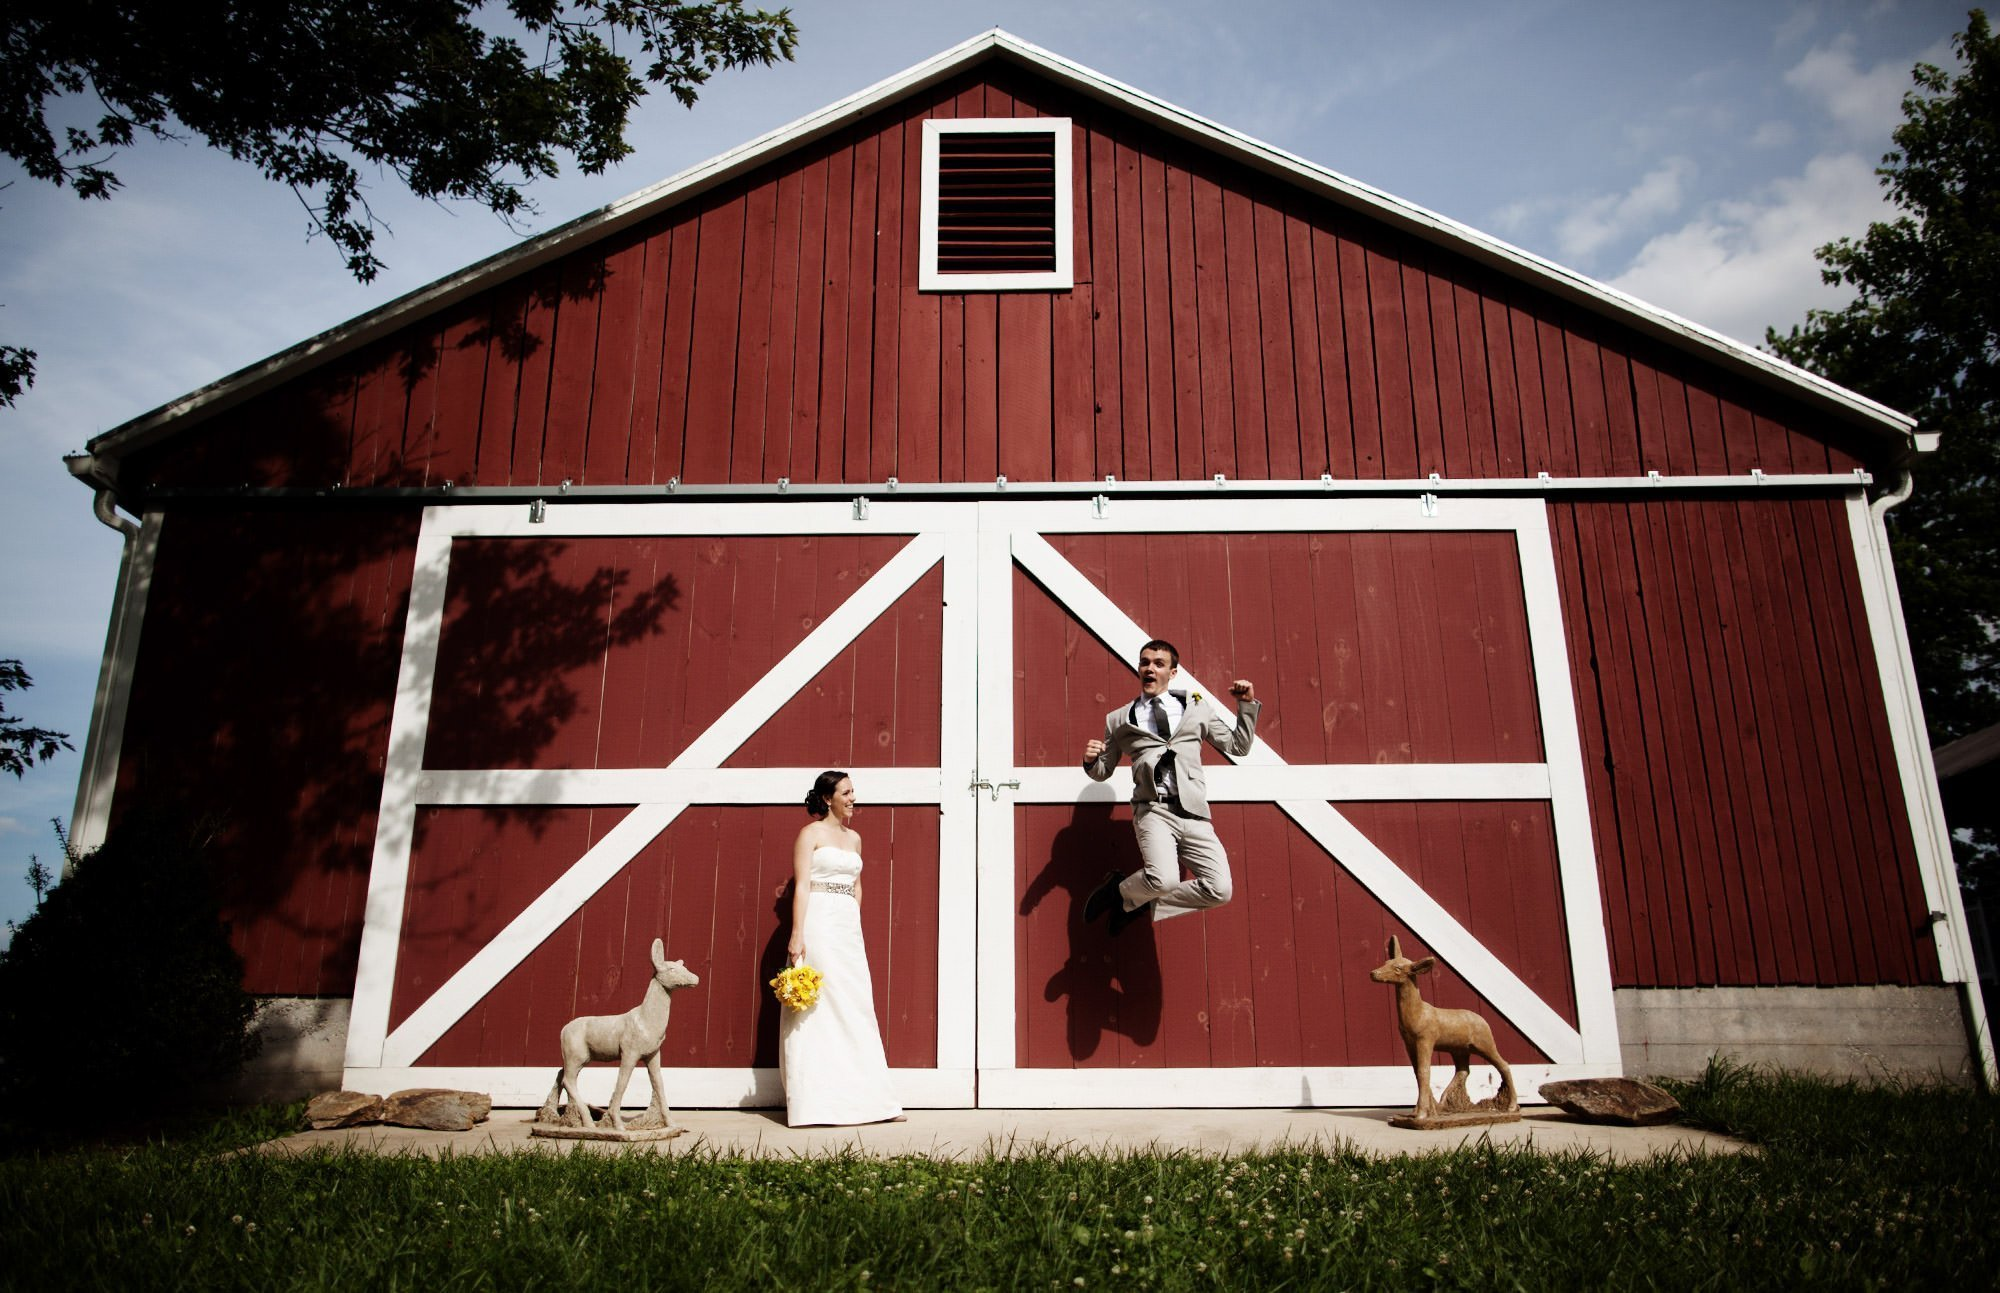 The groom jumps for joy in front of the red barn during his Sunset Hills Vineyard wedding.